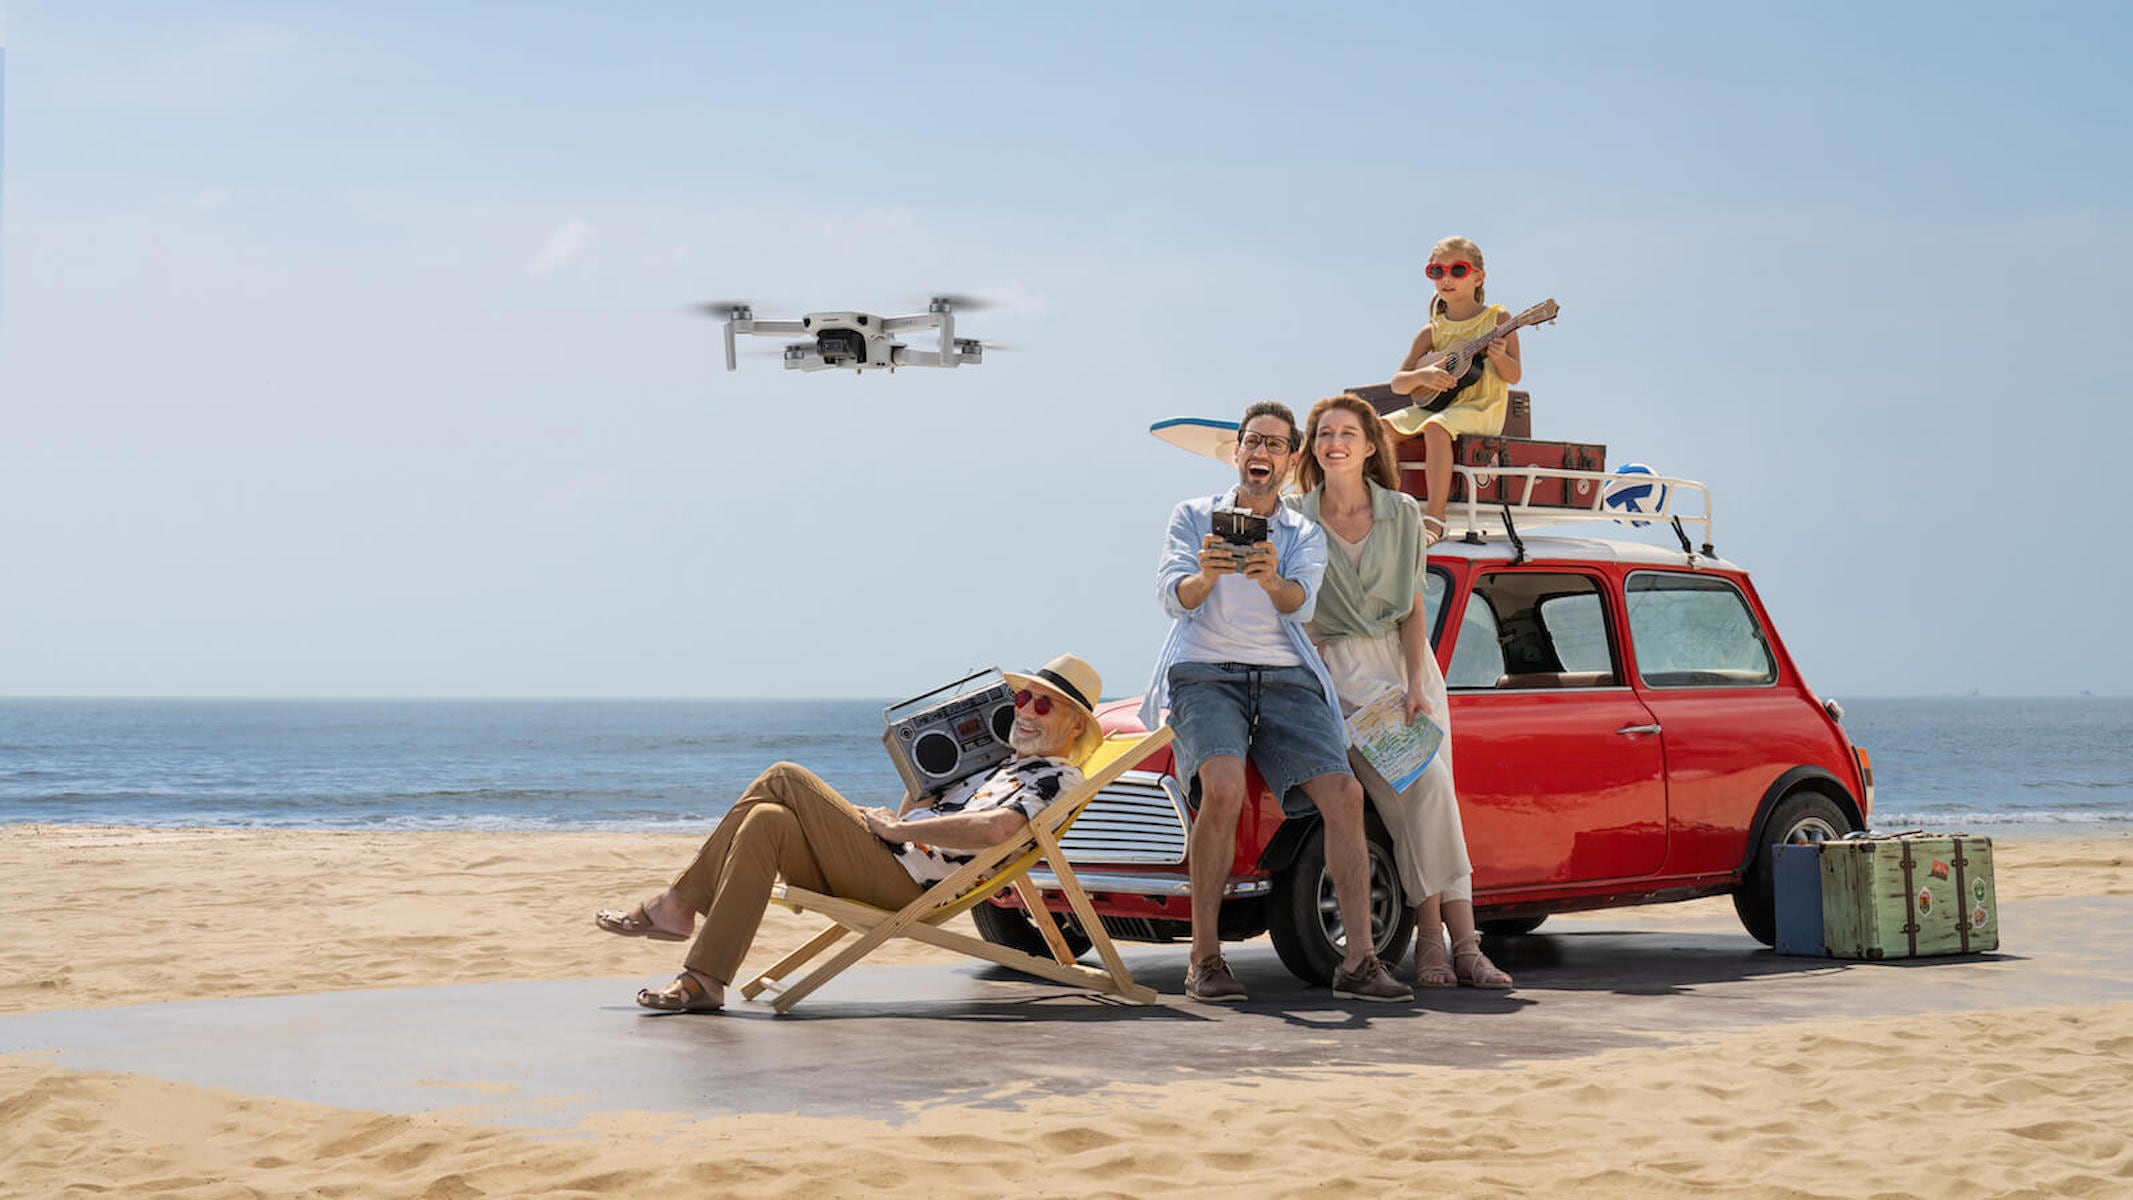 Best drones to buy: professional, camera, toy, and more